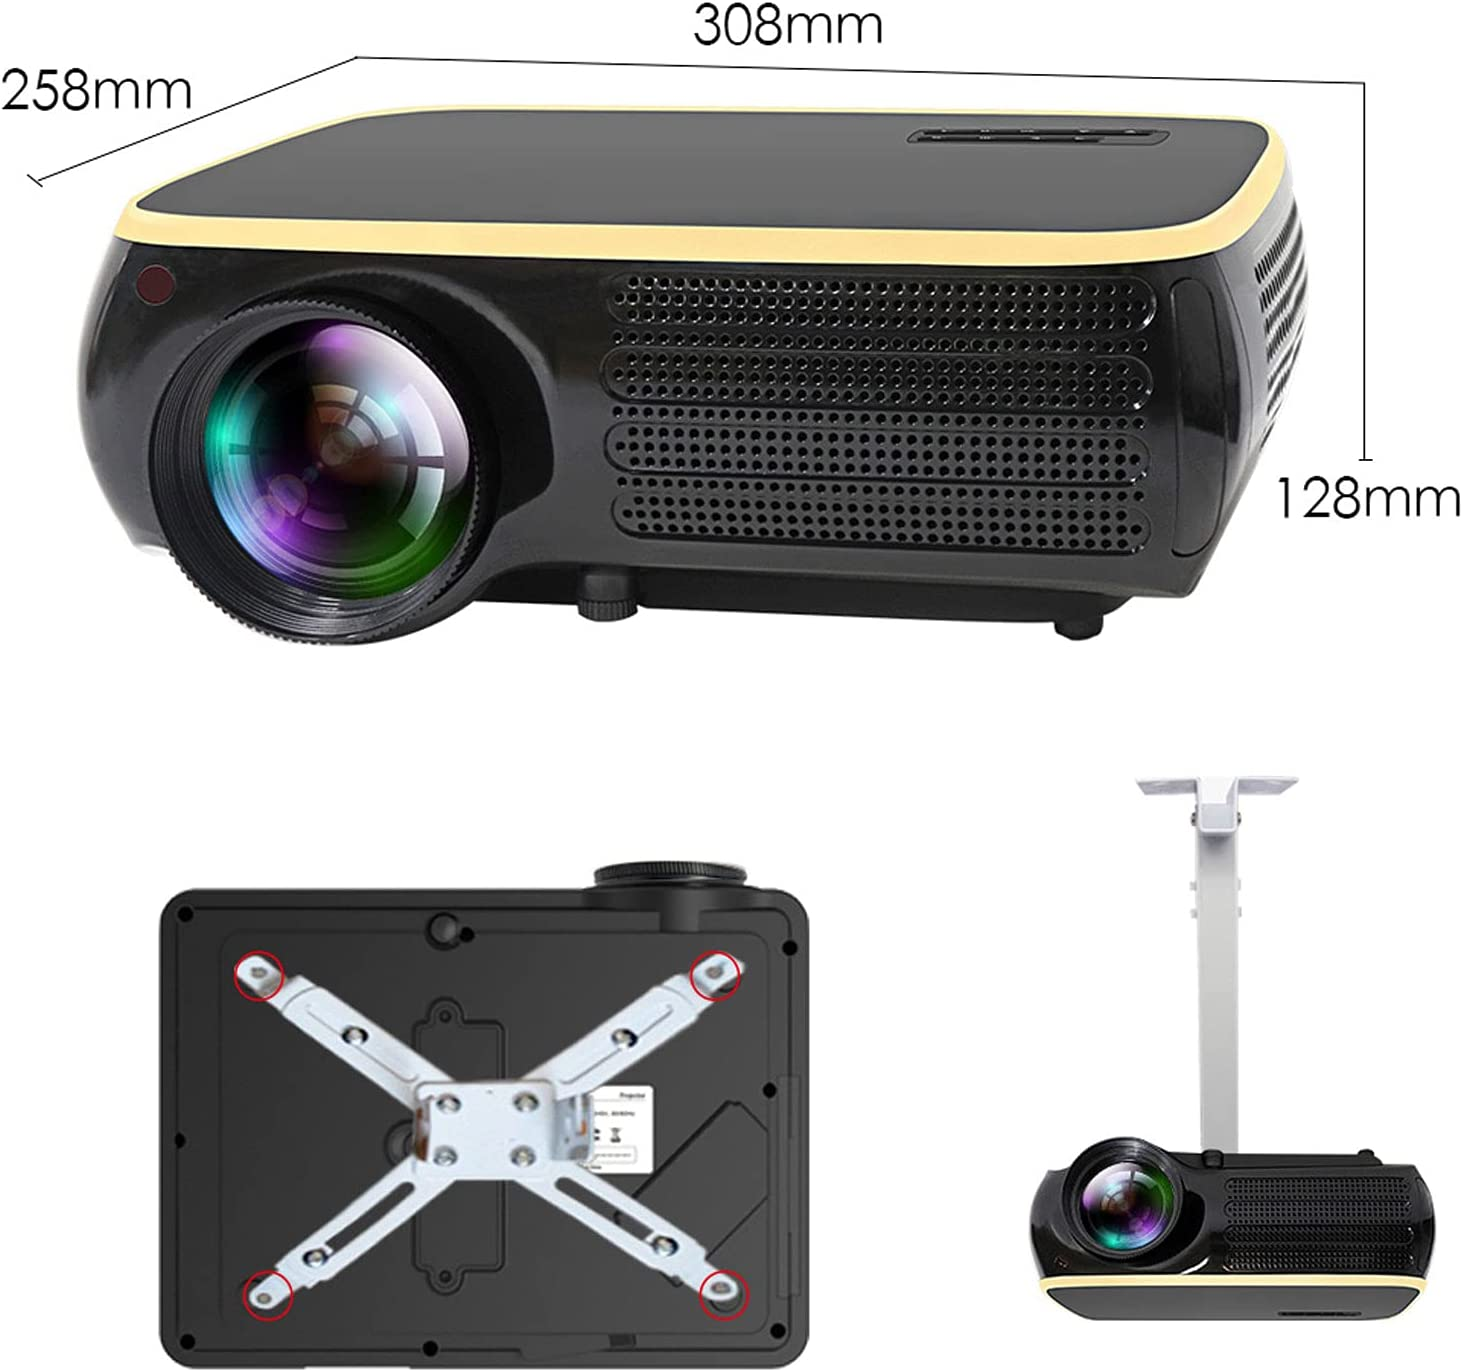 Portable Projector, Definition Wireless 4k Mobile Phone Projection Screen,High Definition Smart 29000 Lumens Home Office Projector, Support USB, TF Card, Laptop and More